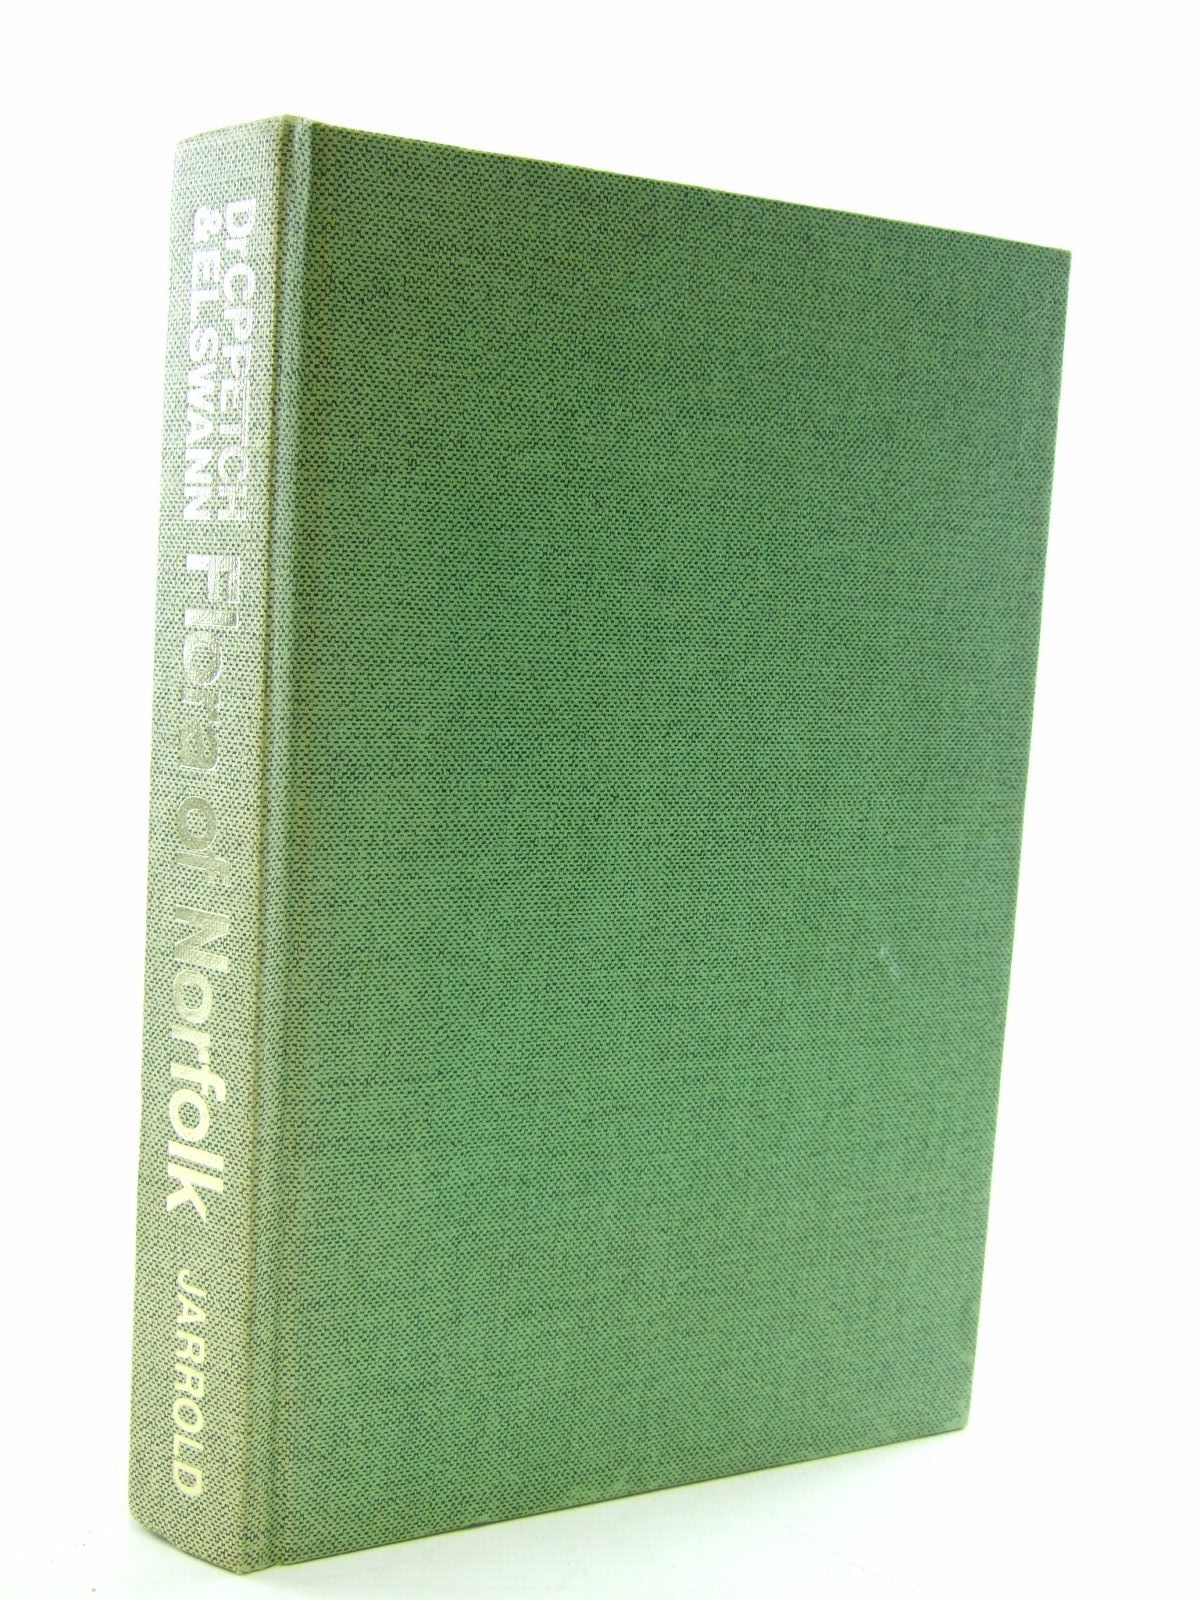 Photo of FLORA OF NORFOLK written by Petch, C.P. Swann, E.L. published by Jarrold and Sons Limited (STOCK CODE: 1206654)  for sale by Stella & Rose's Books